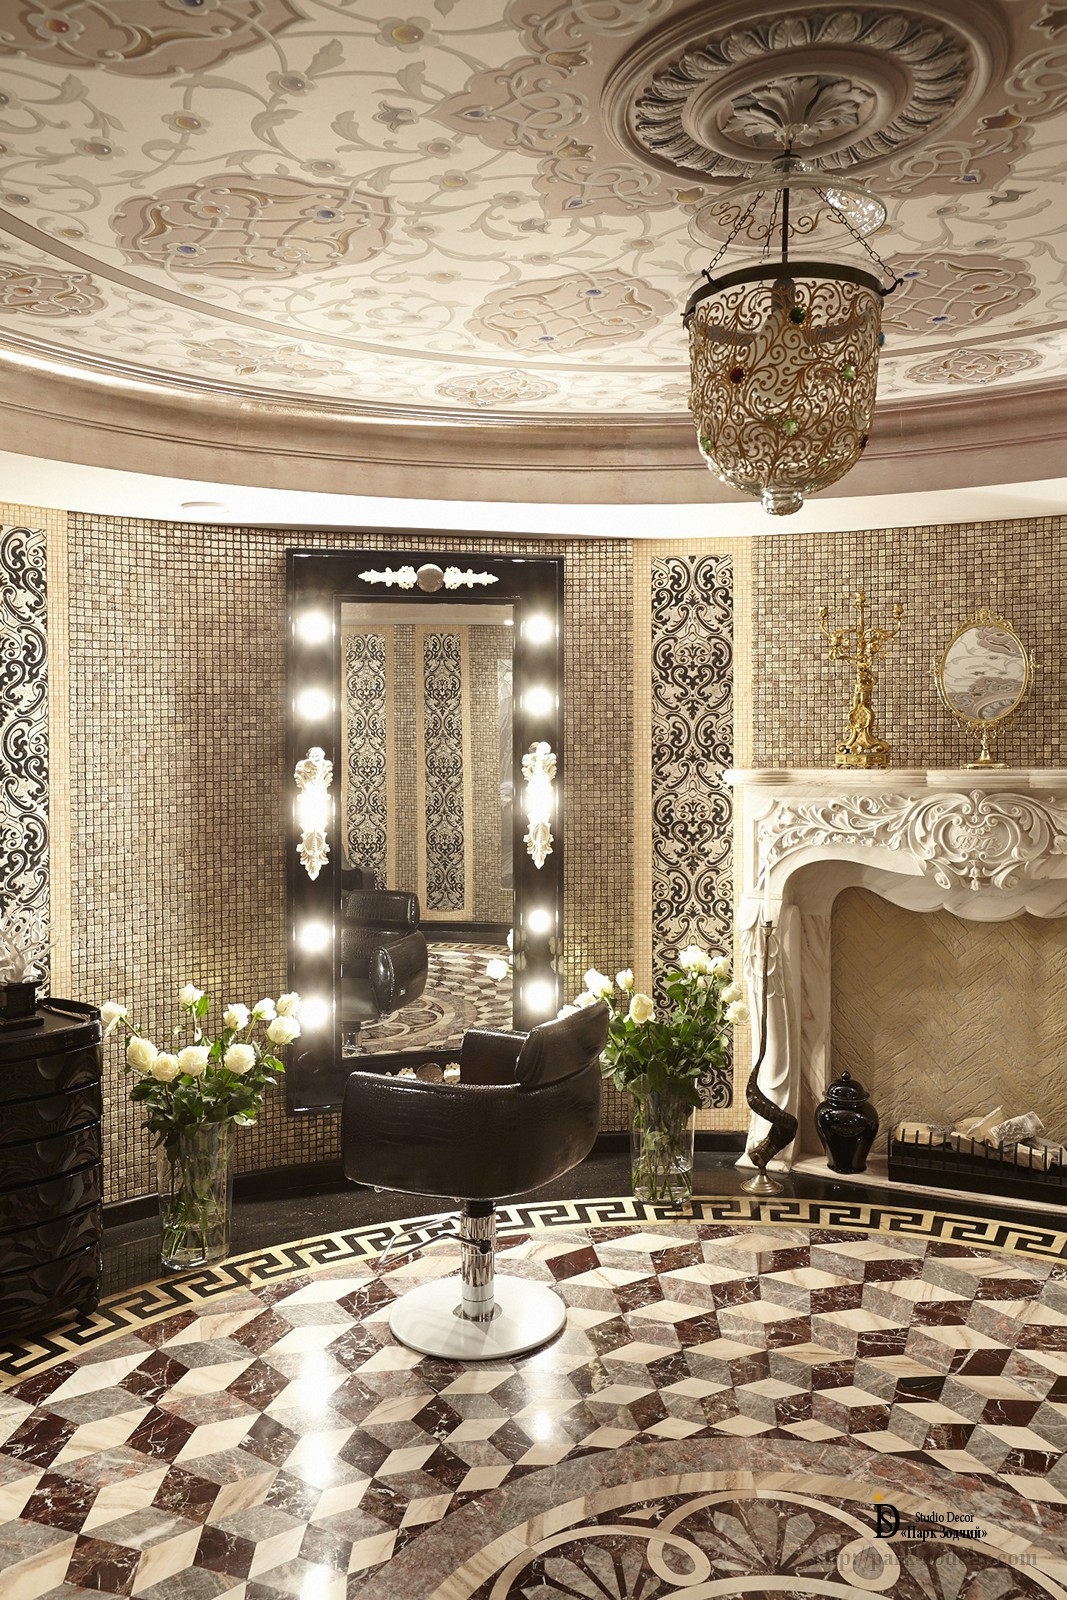 Eclecticism in the design of the dressing room